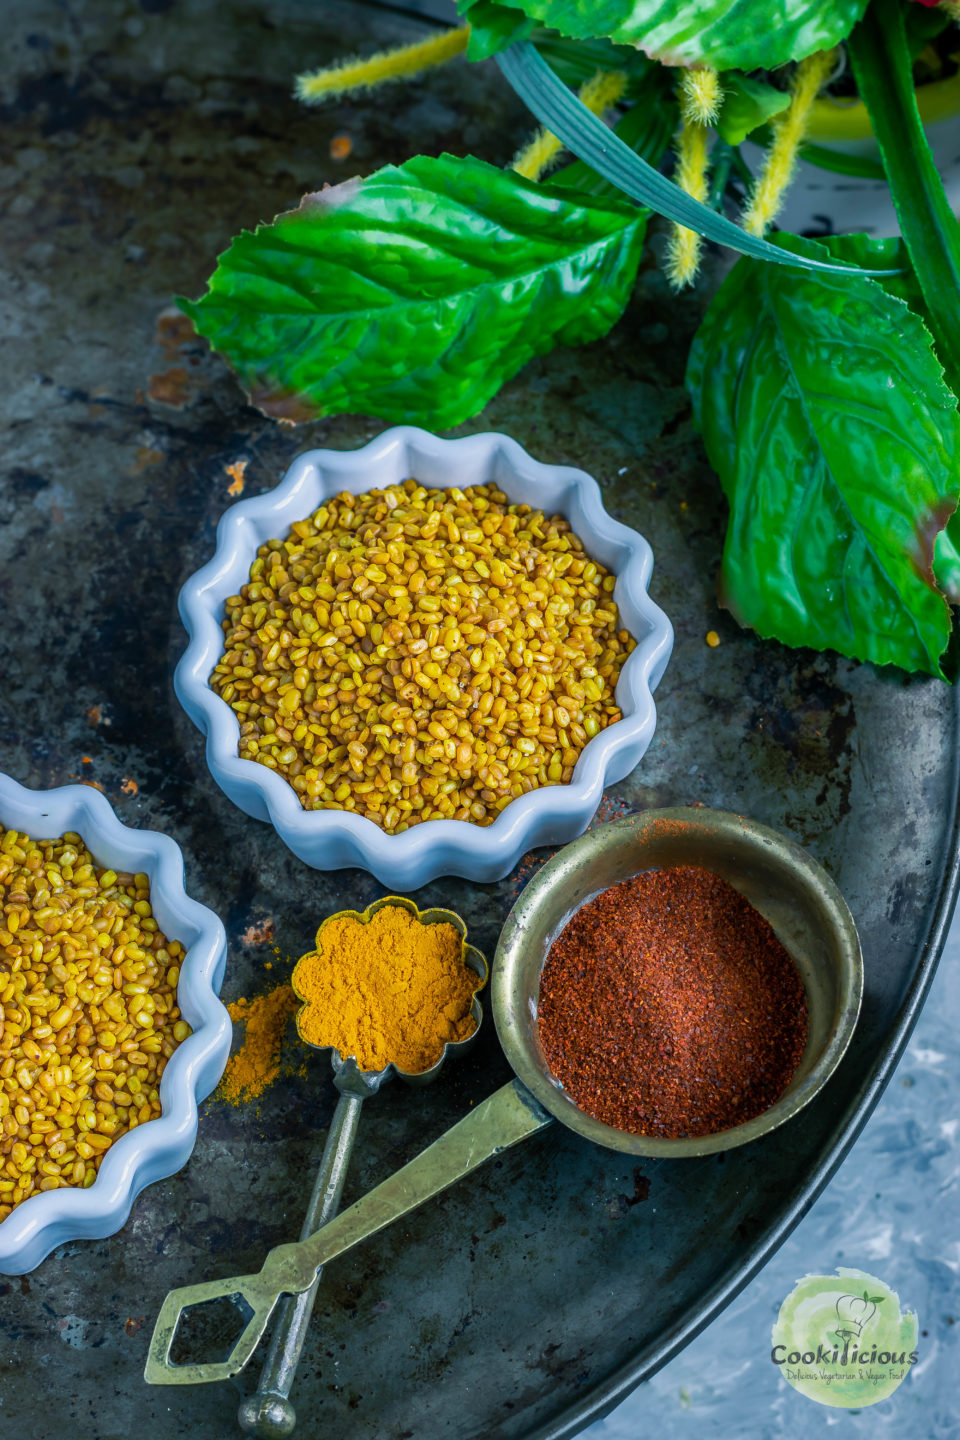 one bowl of Crunchy Moong Dal with chilly powder and turmeric powder next to it